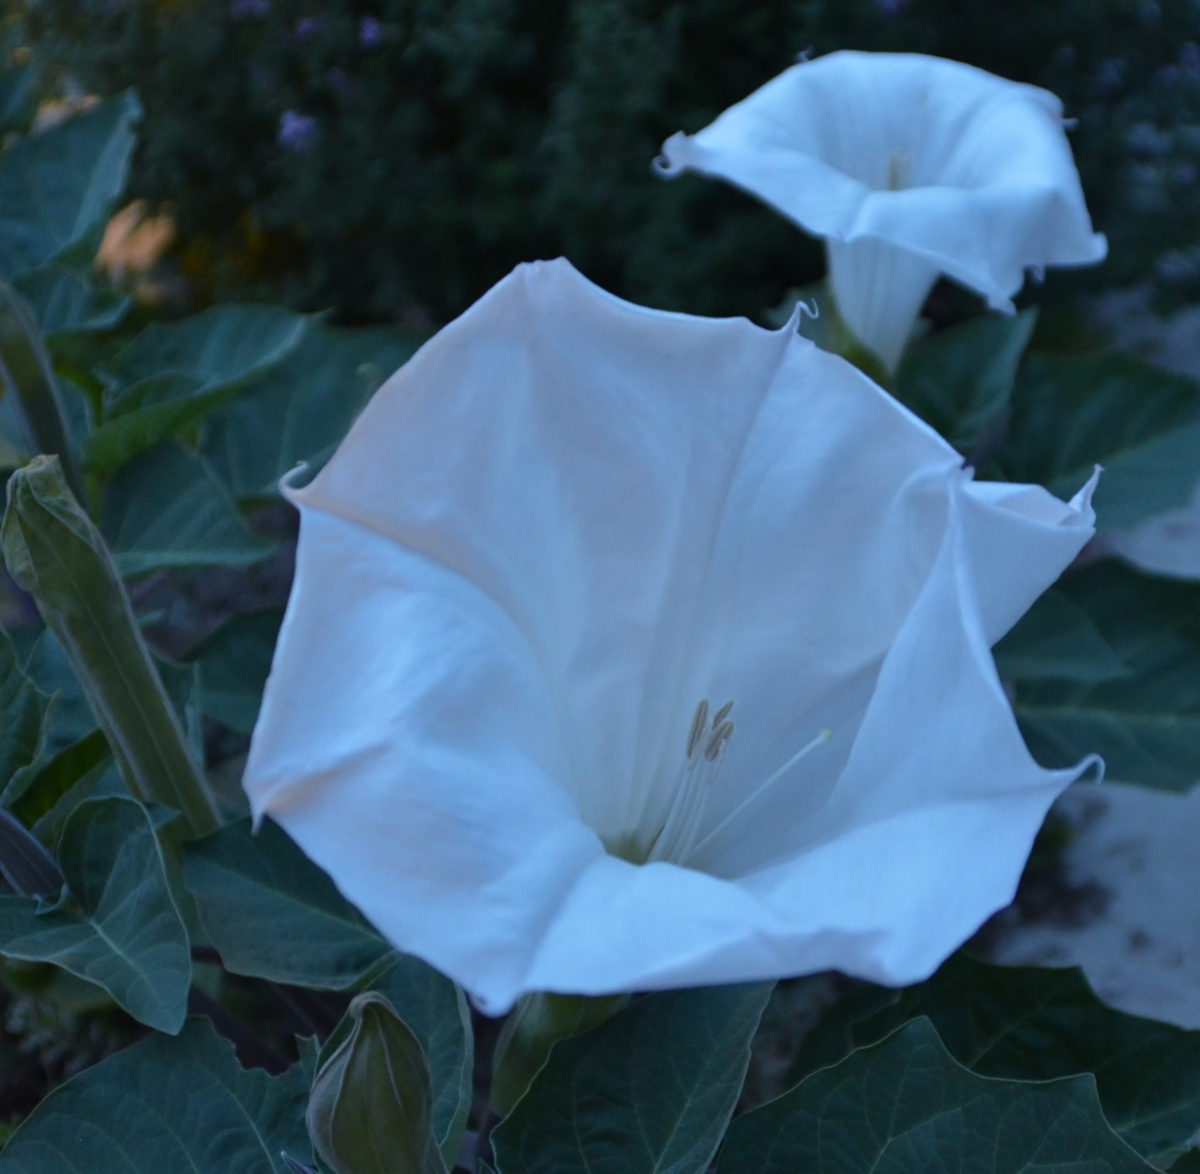 Moon flowers by moonlight heart of a southern woman moon flowers by moonlight izmirmasajfo